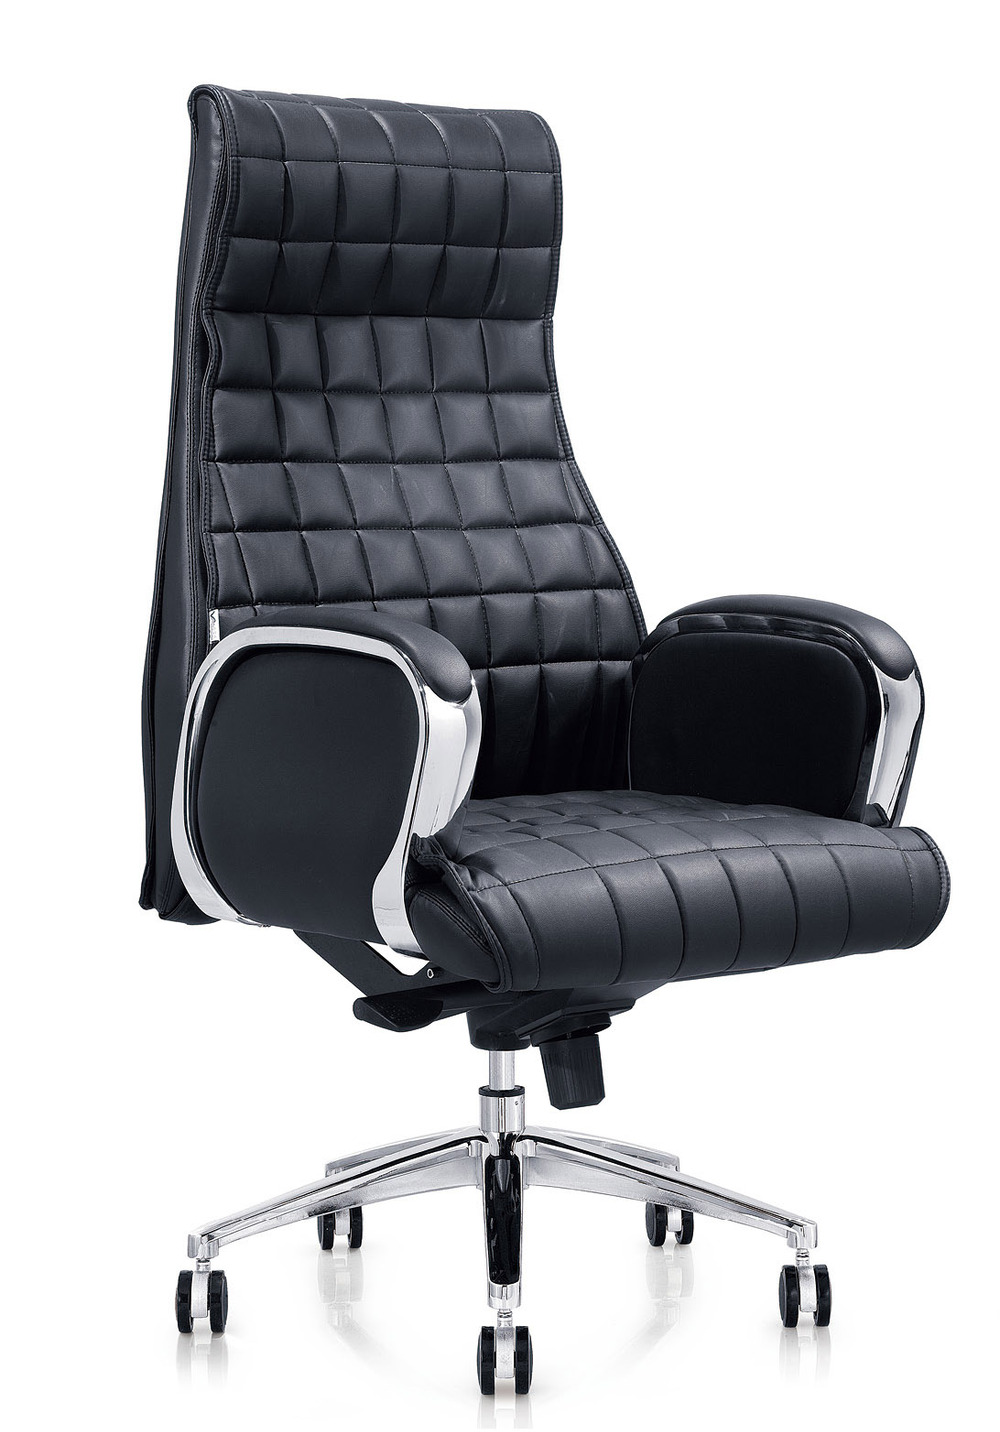 cheap leather office chair sale, find leather office chair sale